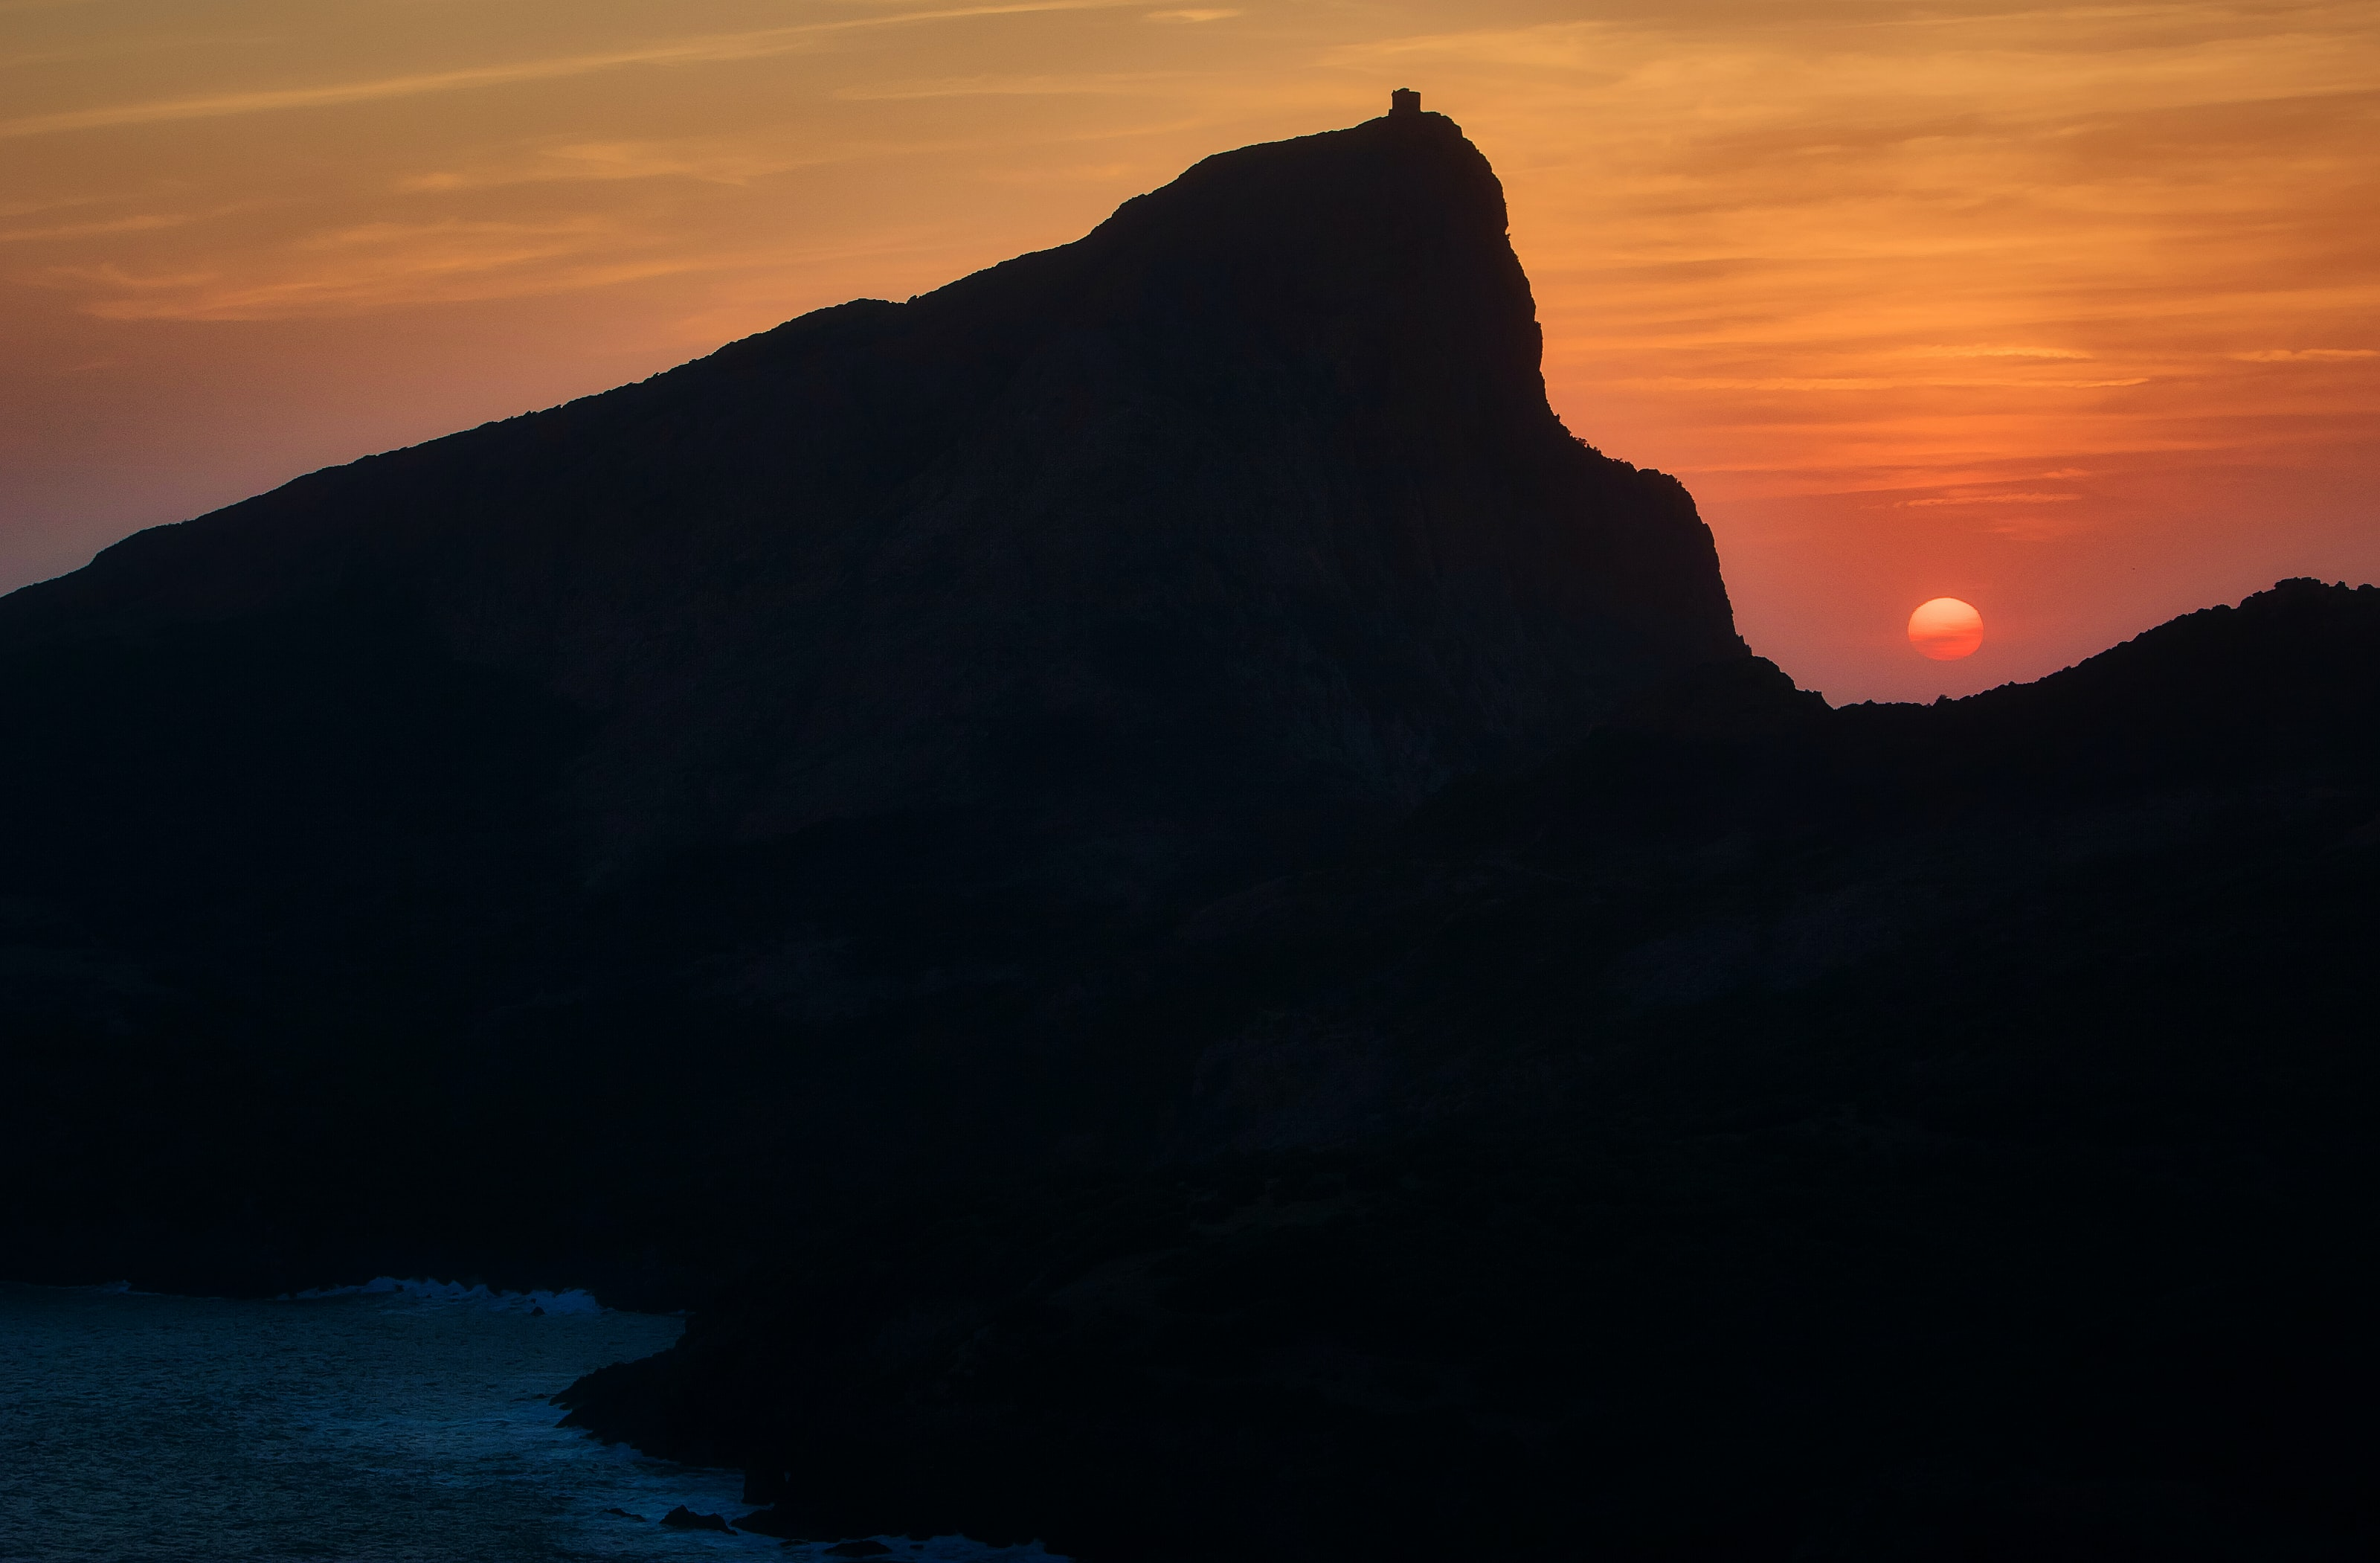 silhouette of mountain at sunset